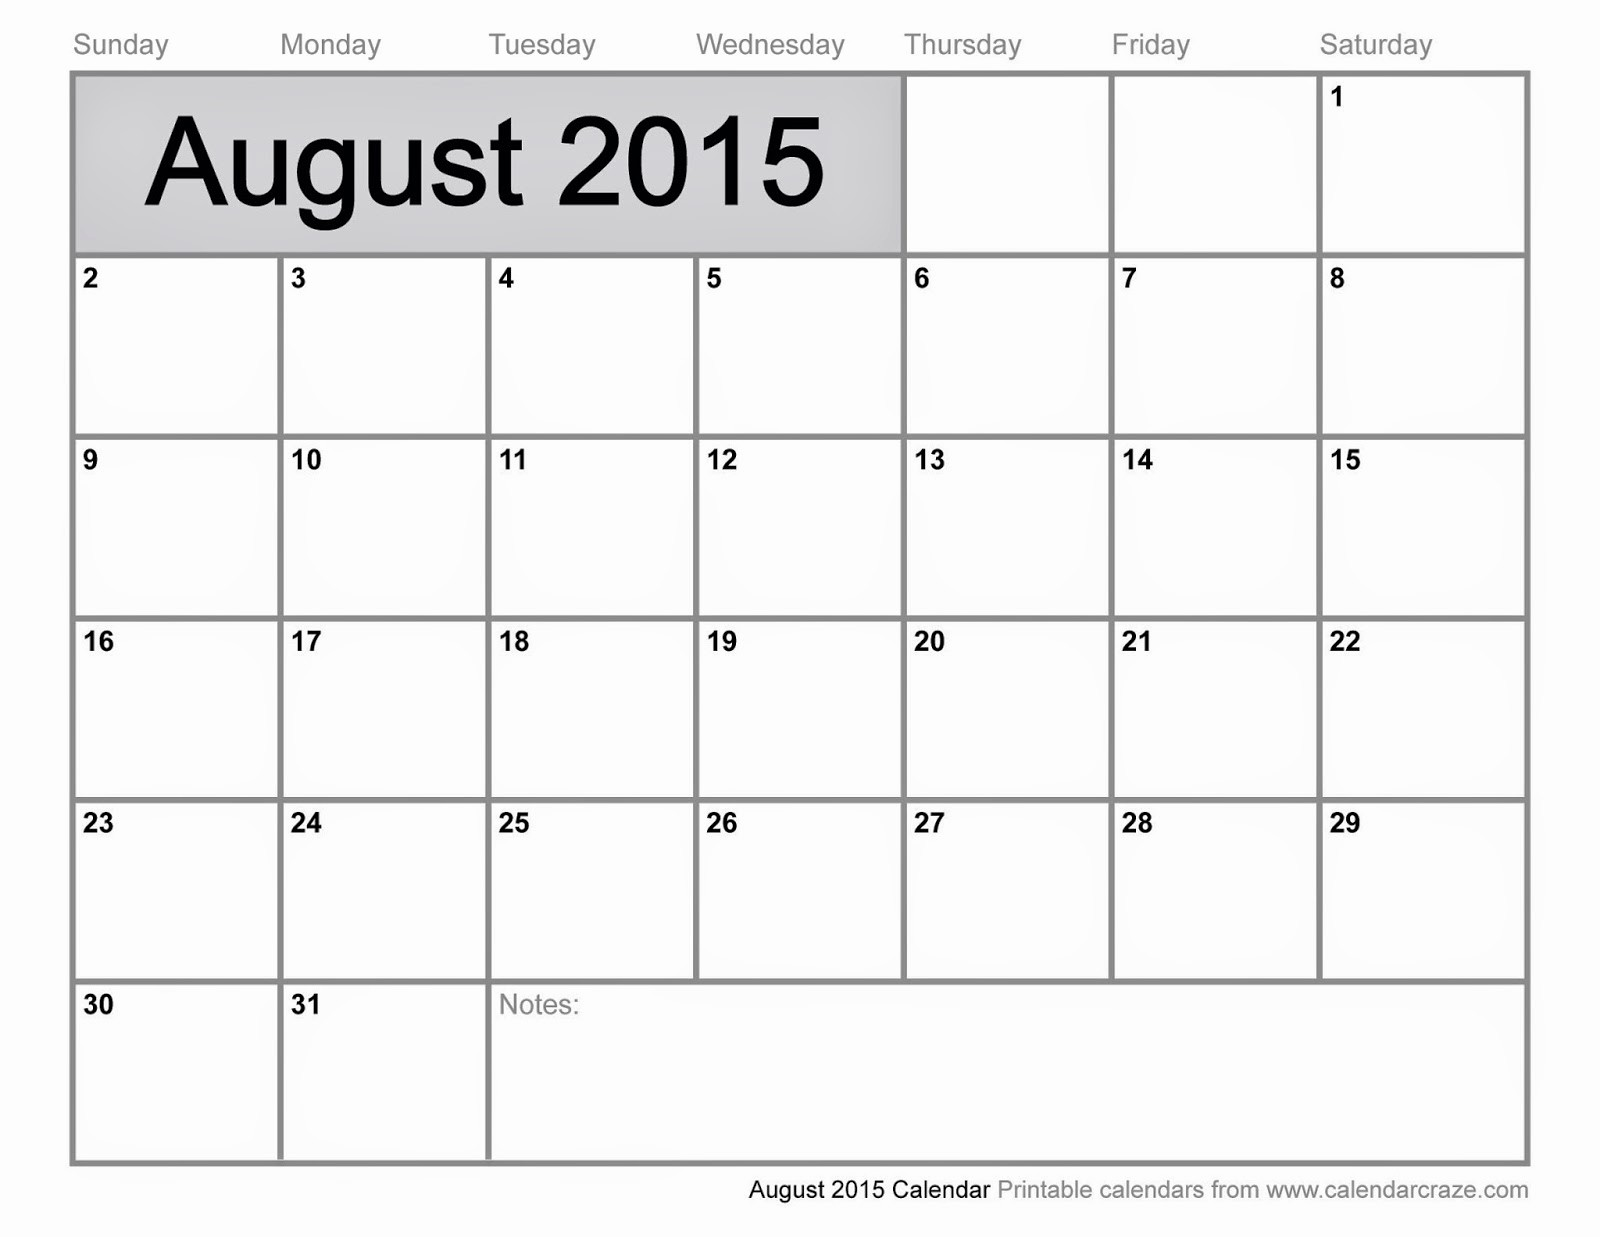 Free Calendar Templates August 2015 Awesome Free Printable Calendar 2018 Free Printable Calendar August